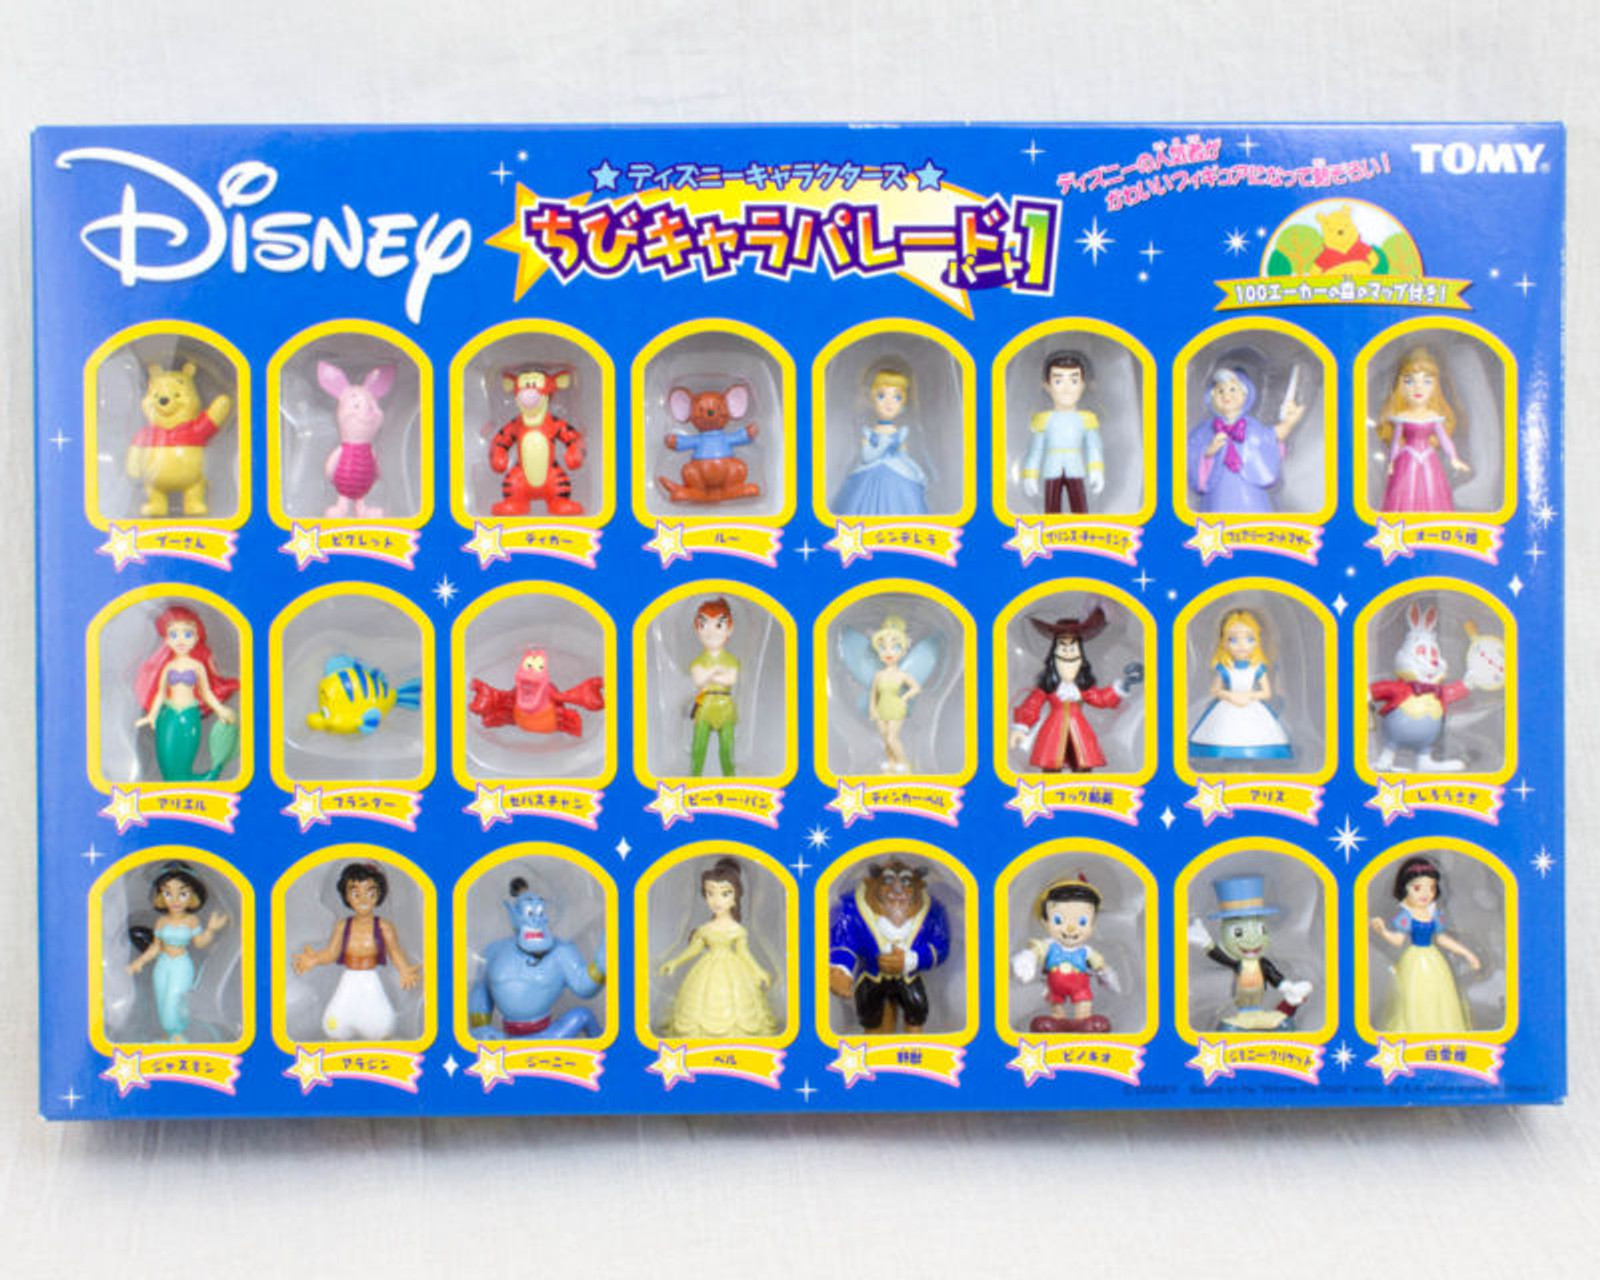 Disney Characters Chibi Chara Parade Vol.1 Mascot Figure 24pc set Tomy JAPAN [NEW]